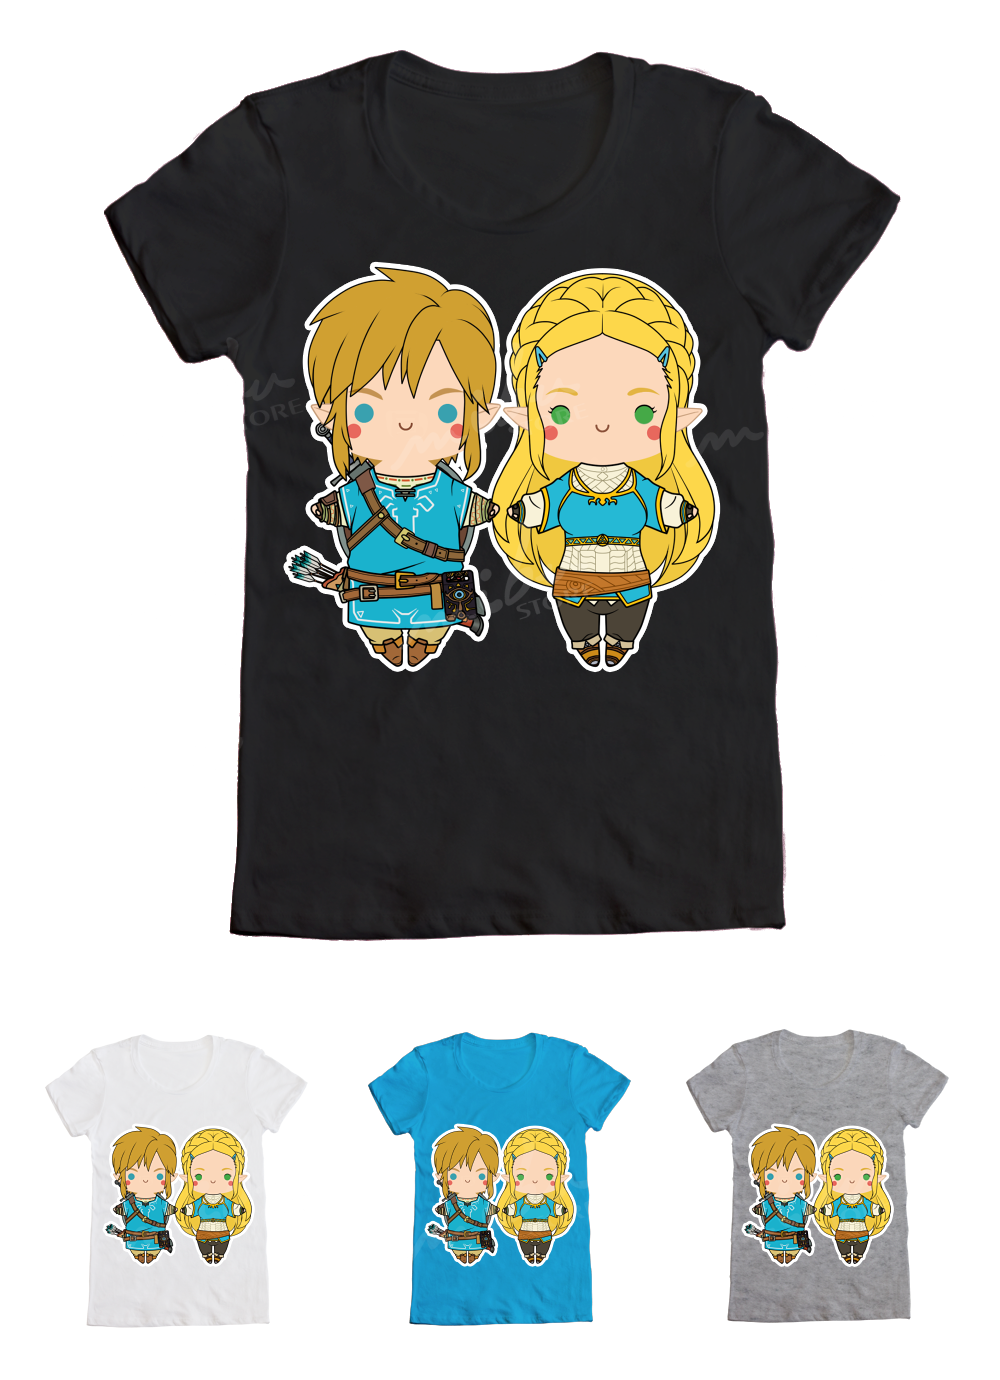 Botw Link Zelda Long Hair Ver T Shirt Sold By Mibustore